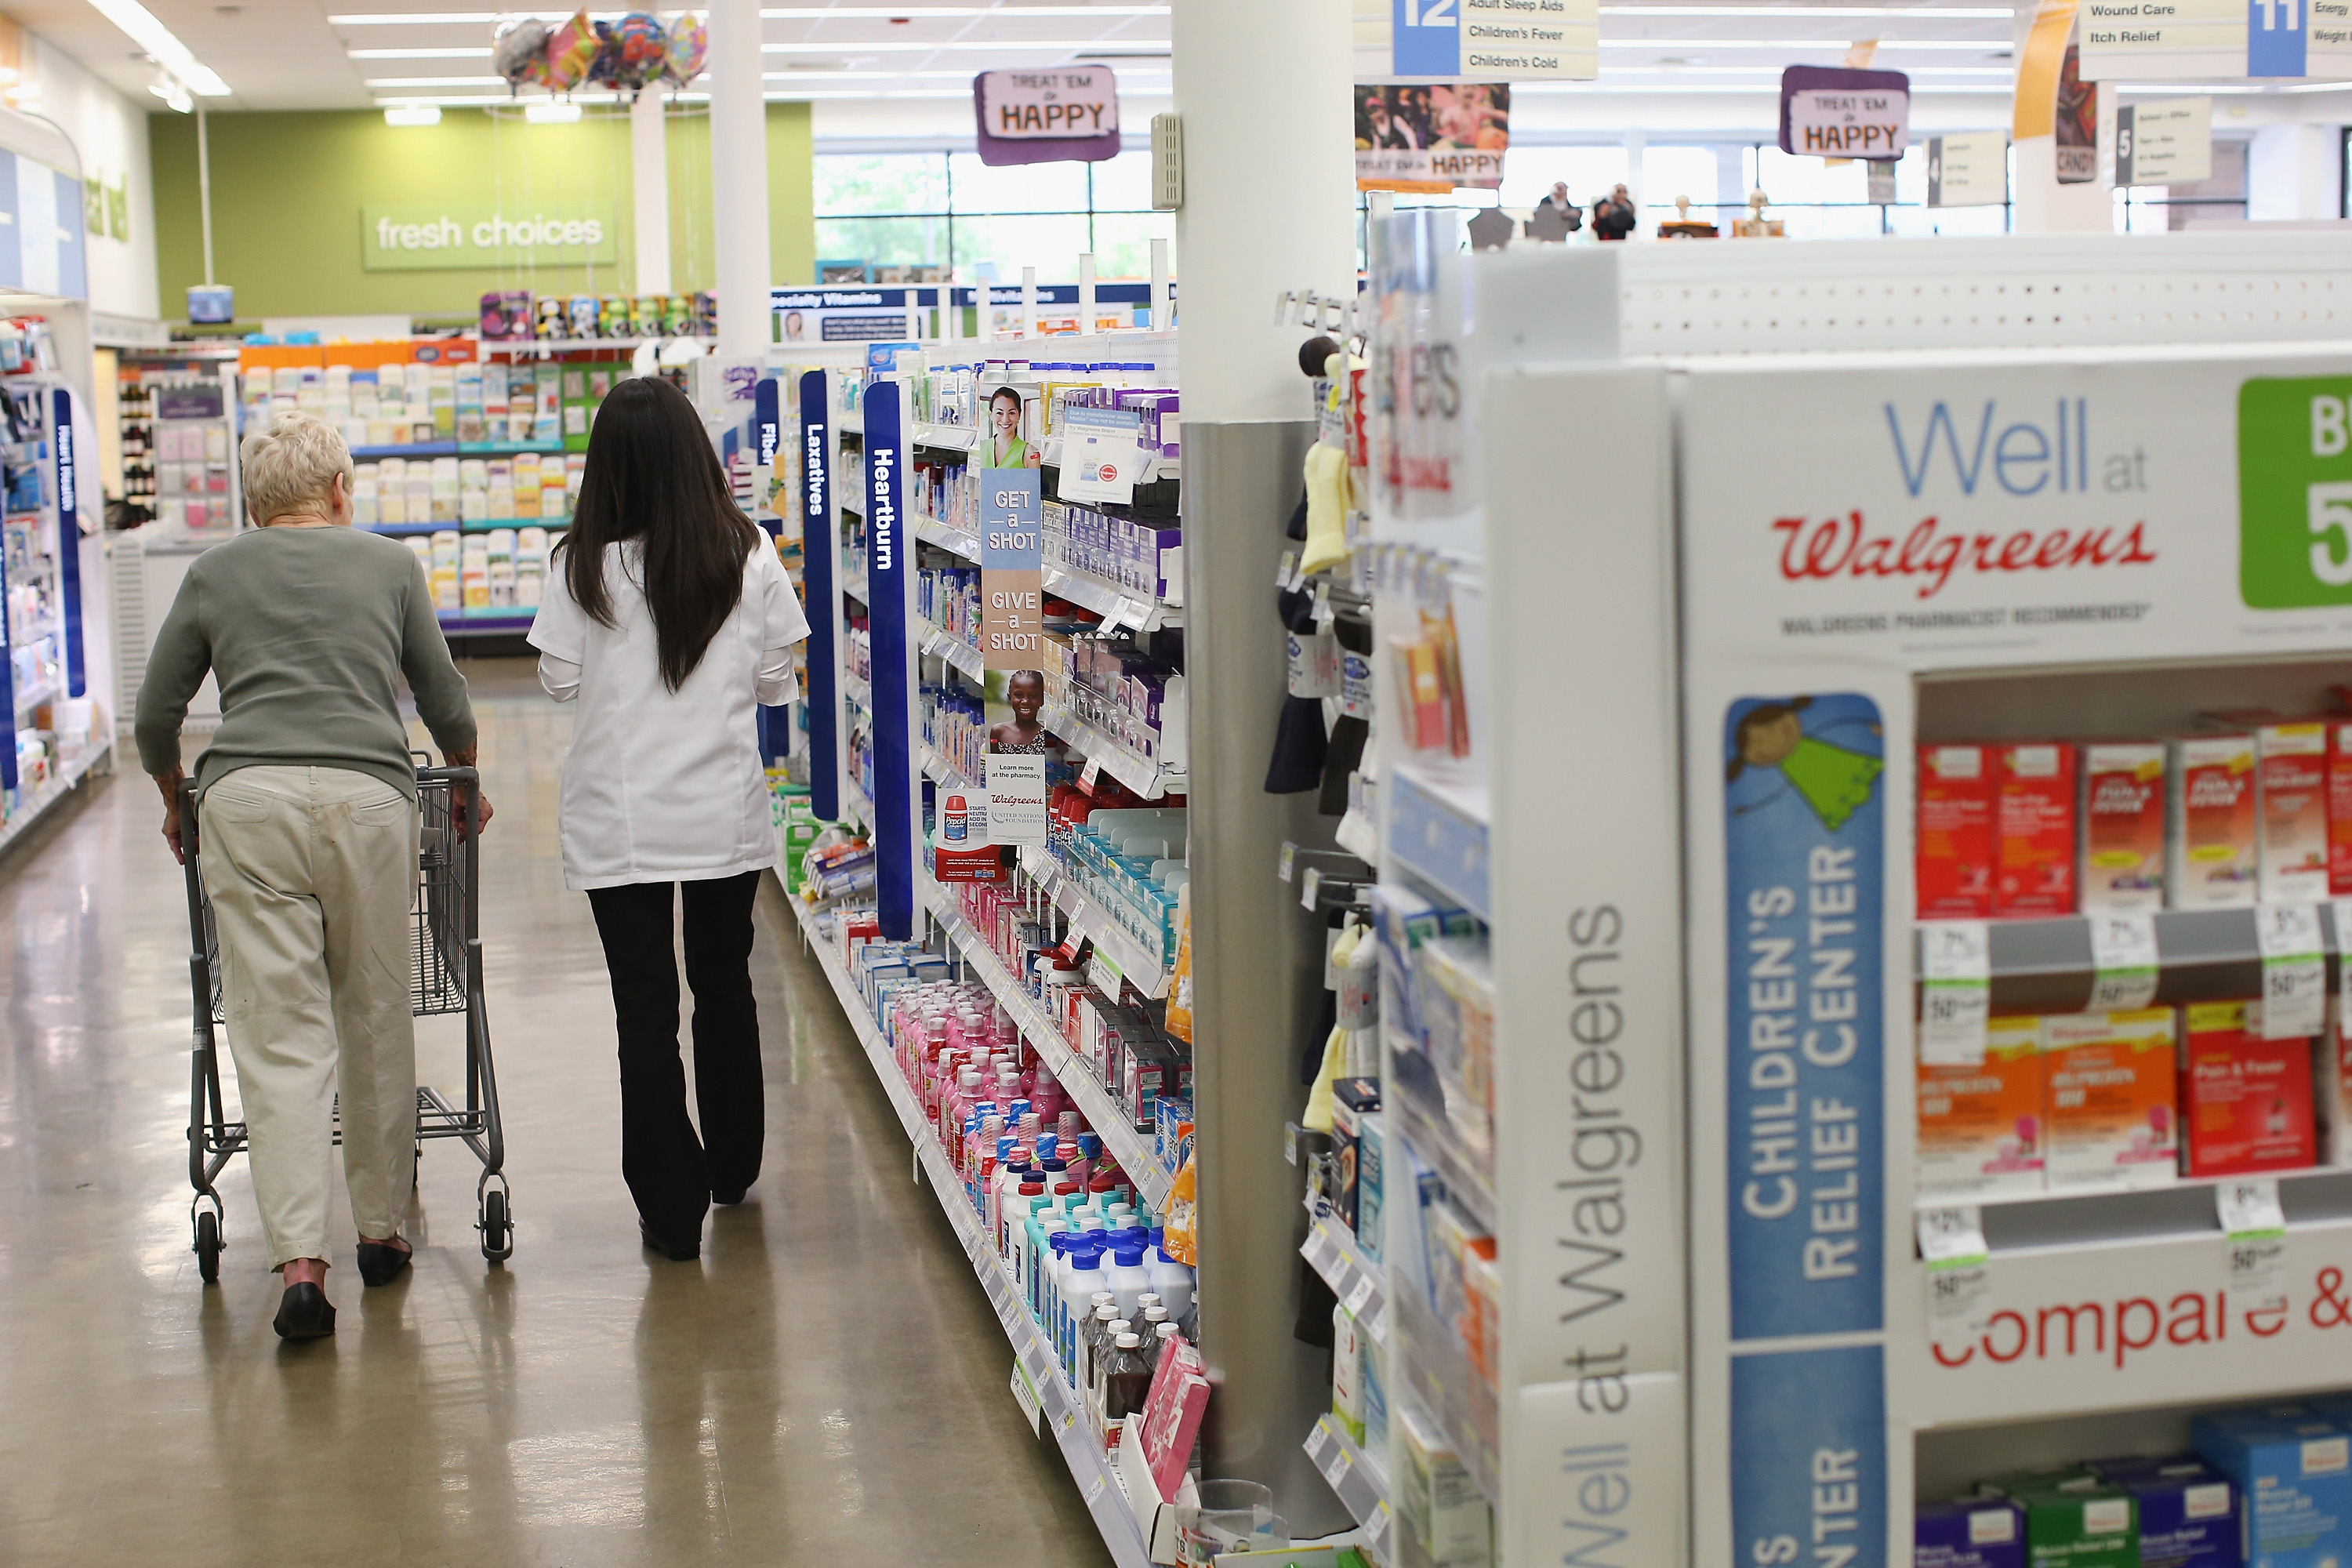 Walgreens Announces Plans To Shift Employee's Healthcare To Private Insurance Marketplaces